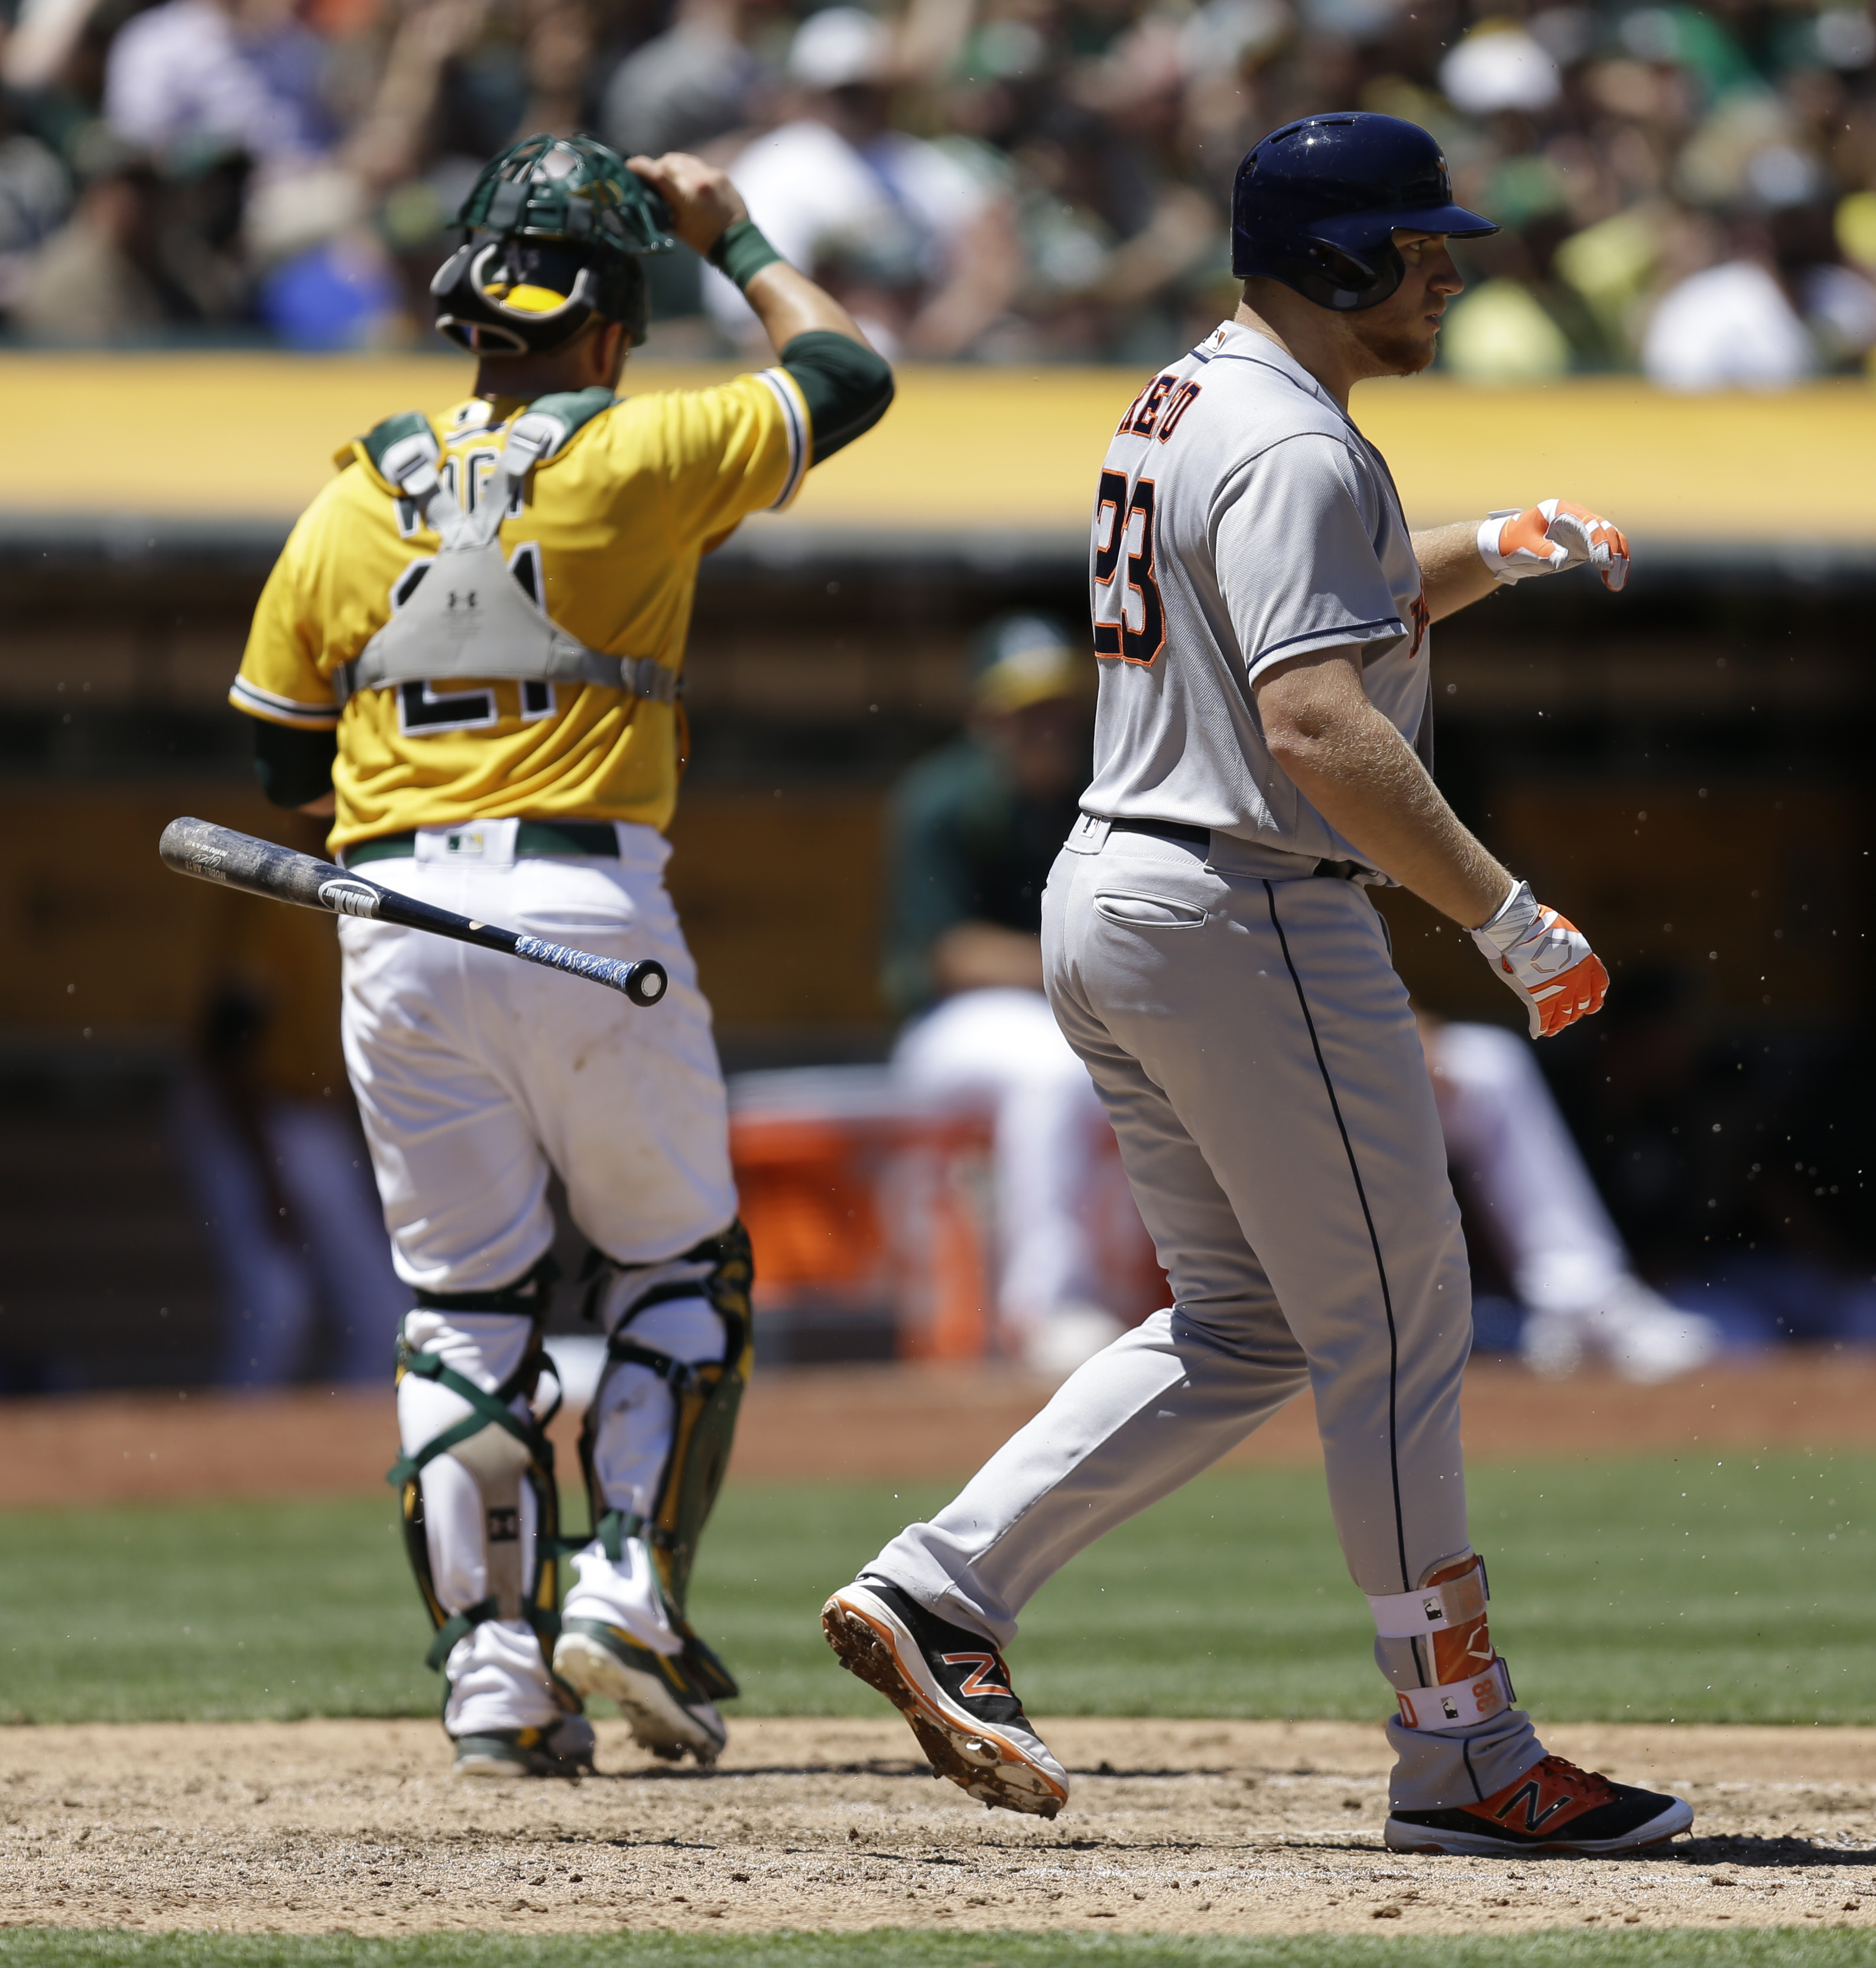 Houston Astros' A.J. Reed, right, throws his bat after striking out to Oakland Athletics pitcher Daniel Mengden in the fifth inning of a baseball game Wednesday, July 20, 2016, in Oakland, Calif. (AP Photo/Ben Margot)